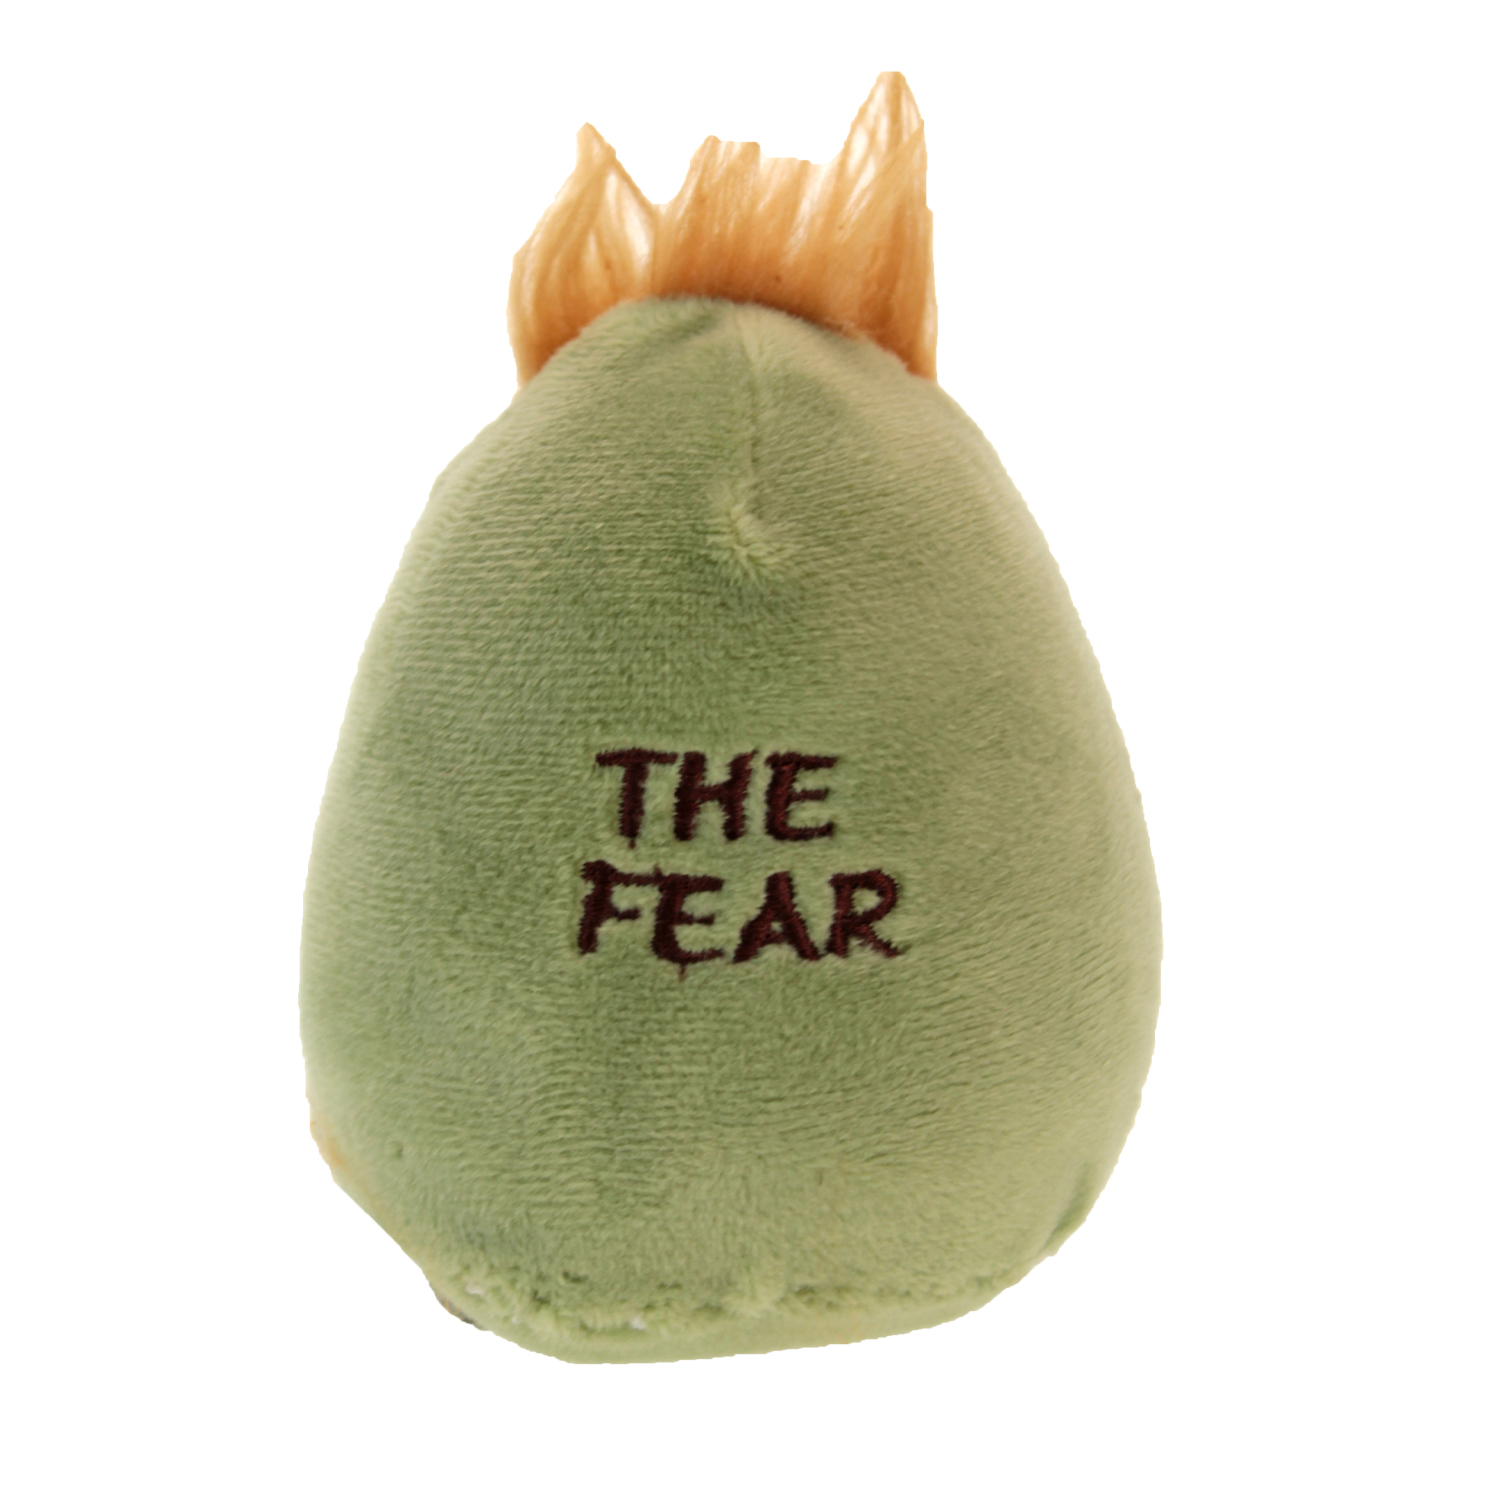 Spuddy-Novelty-Potato-Stress-Ball-Reliever-Adults-Emotion-Sensory-Squeeze-Toys thumbnail 7